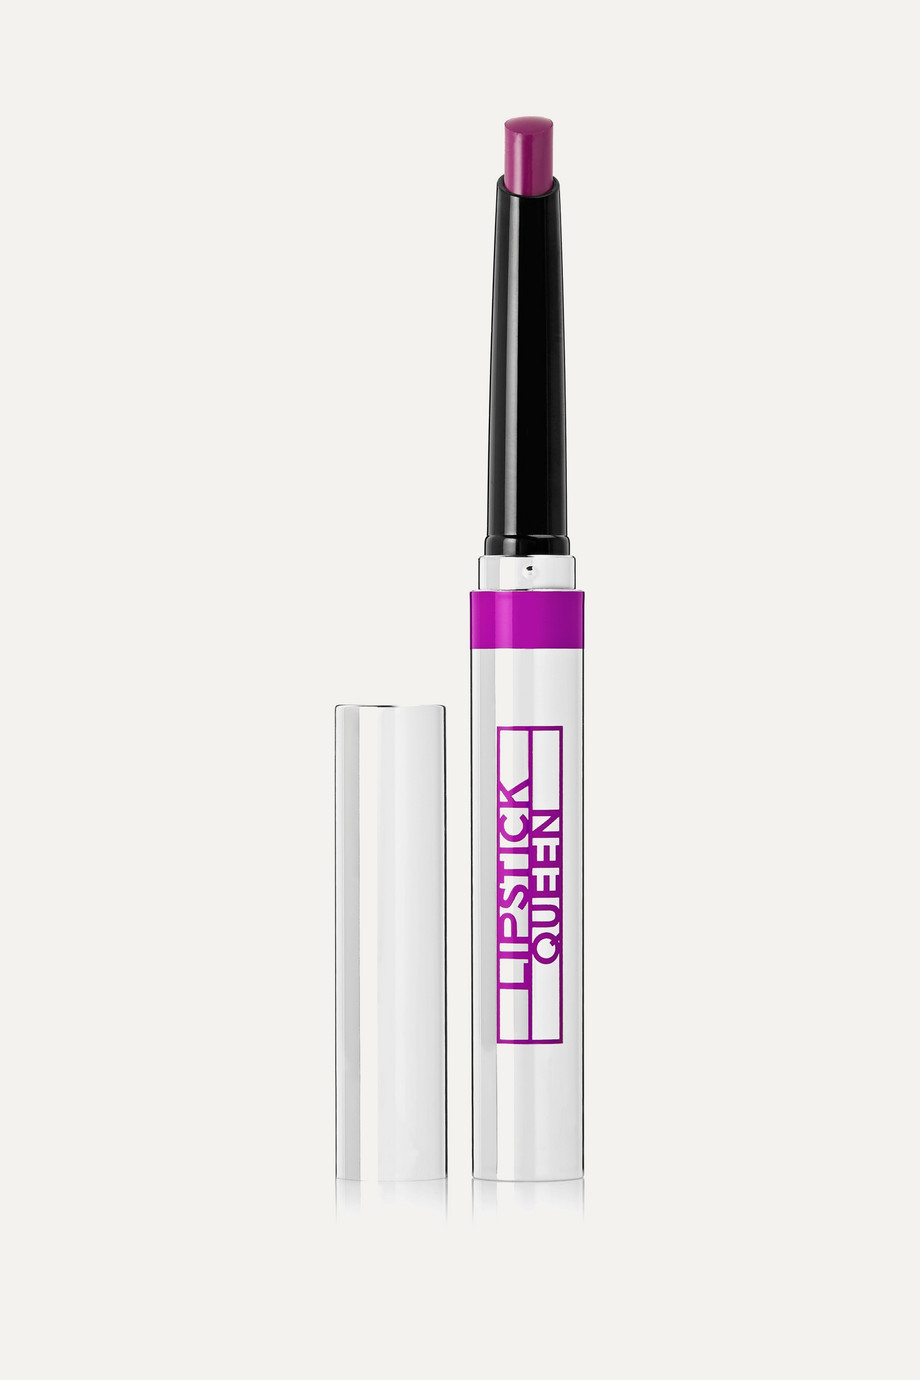 Lipstick Queen Rear View Mirror Lip Lacquer - Magenta Fully Loaded